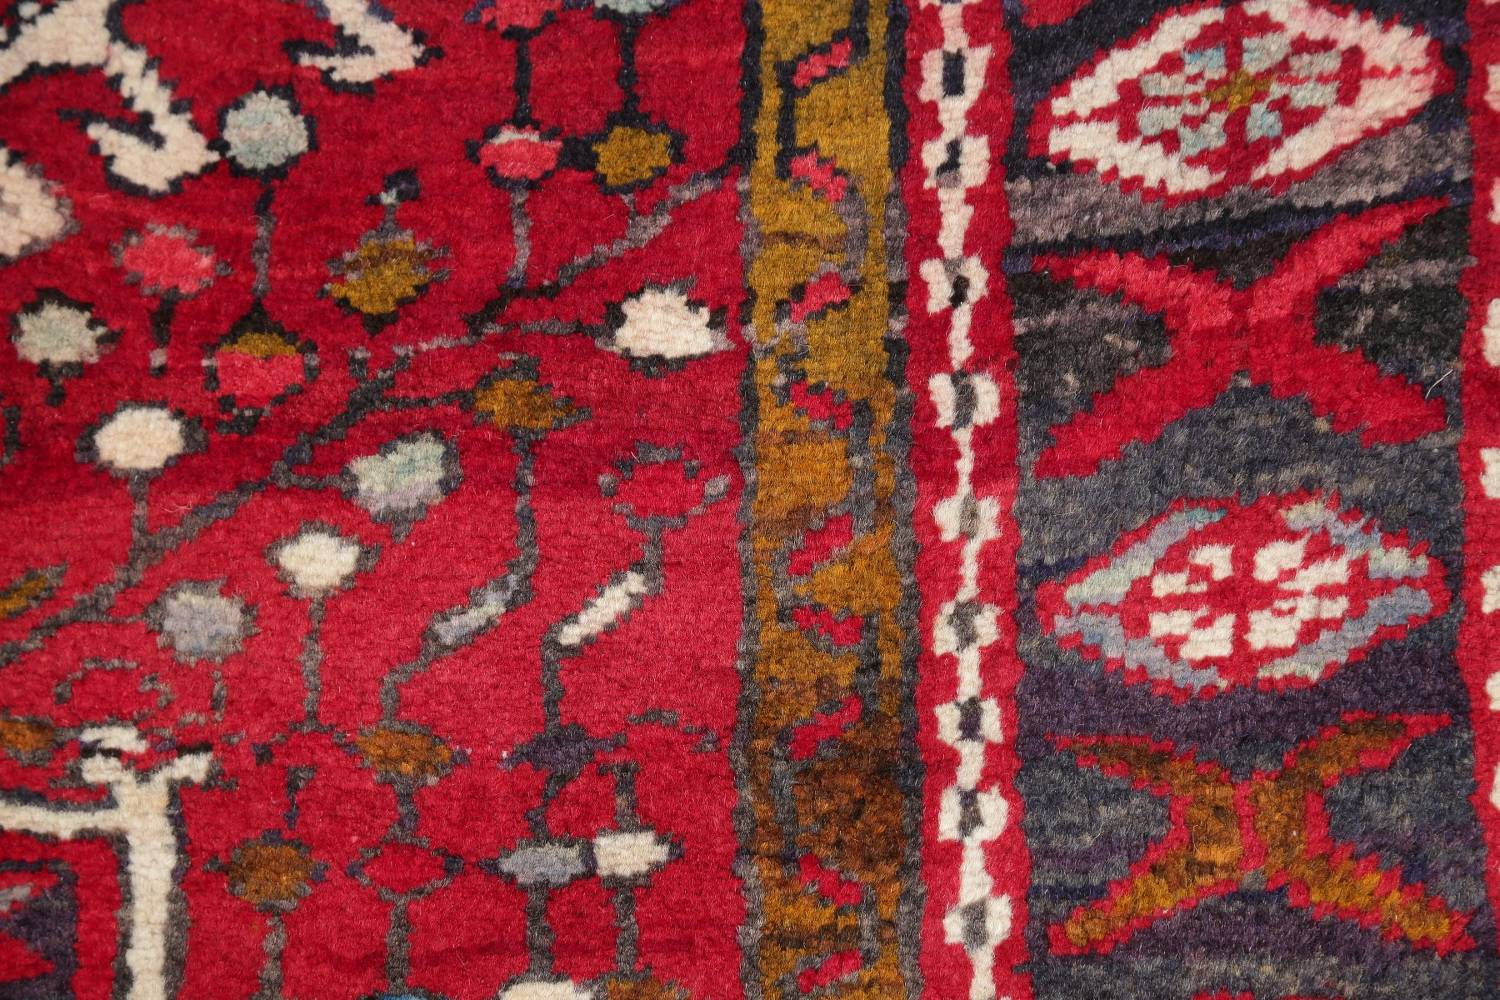 One-of-a-Kind Red Geometric Heriz Persian Hand-Knotted 4x13 Wool Runner Rug image 8